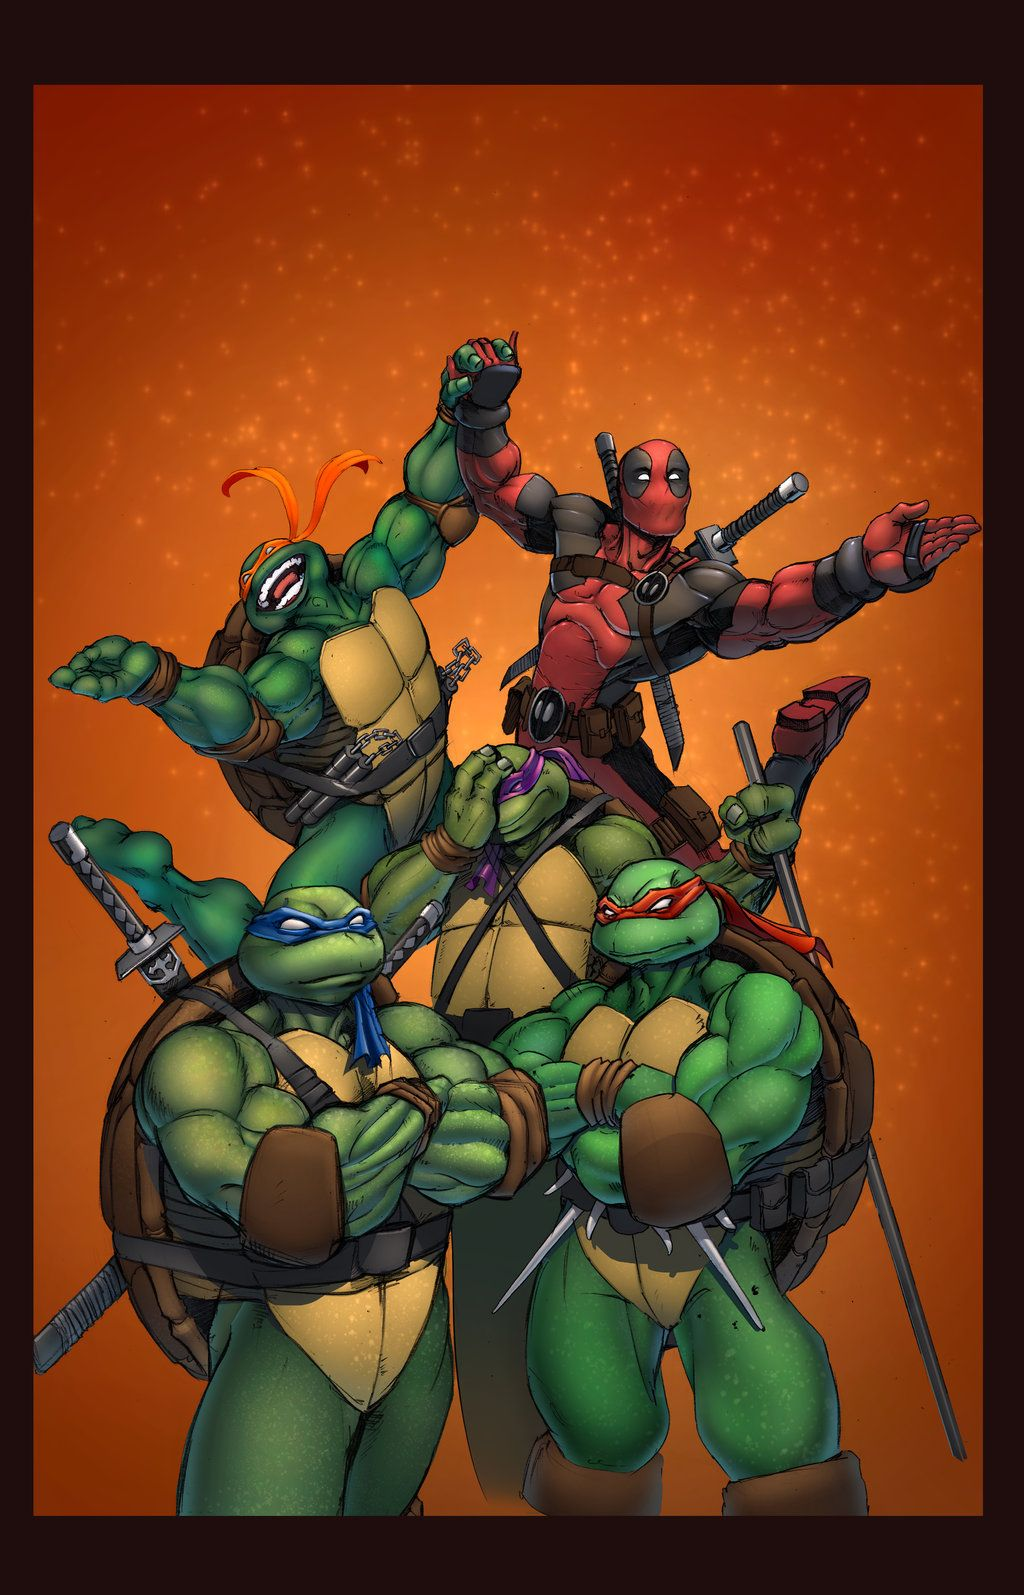 Cowa Changa By Siriussteve On Deviantart Tmnt Teenage Mutant Ninja Turtles Ninja Turtles